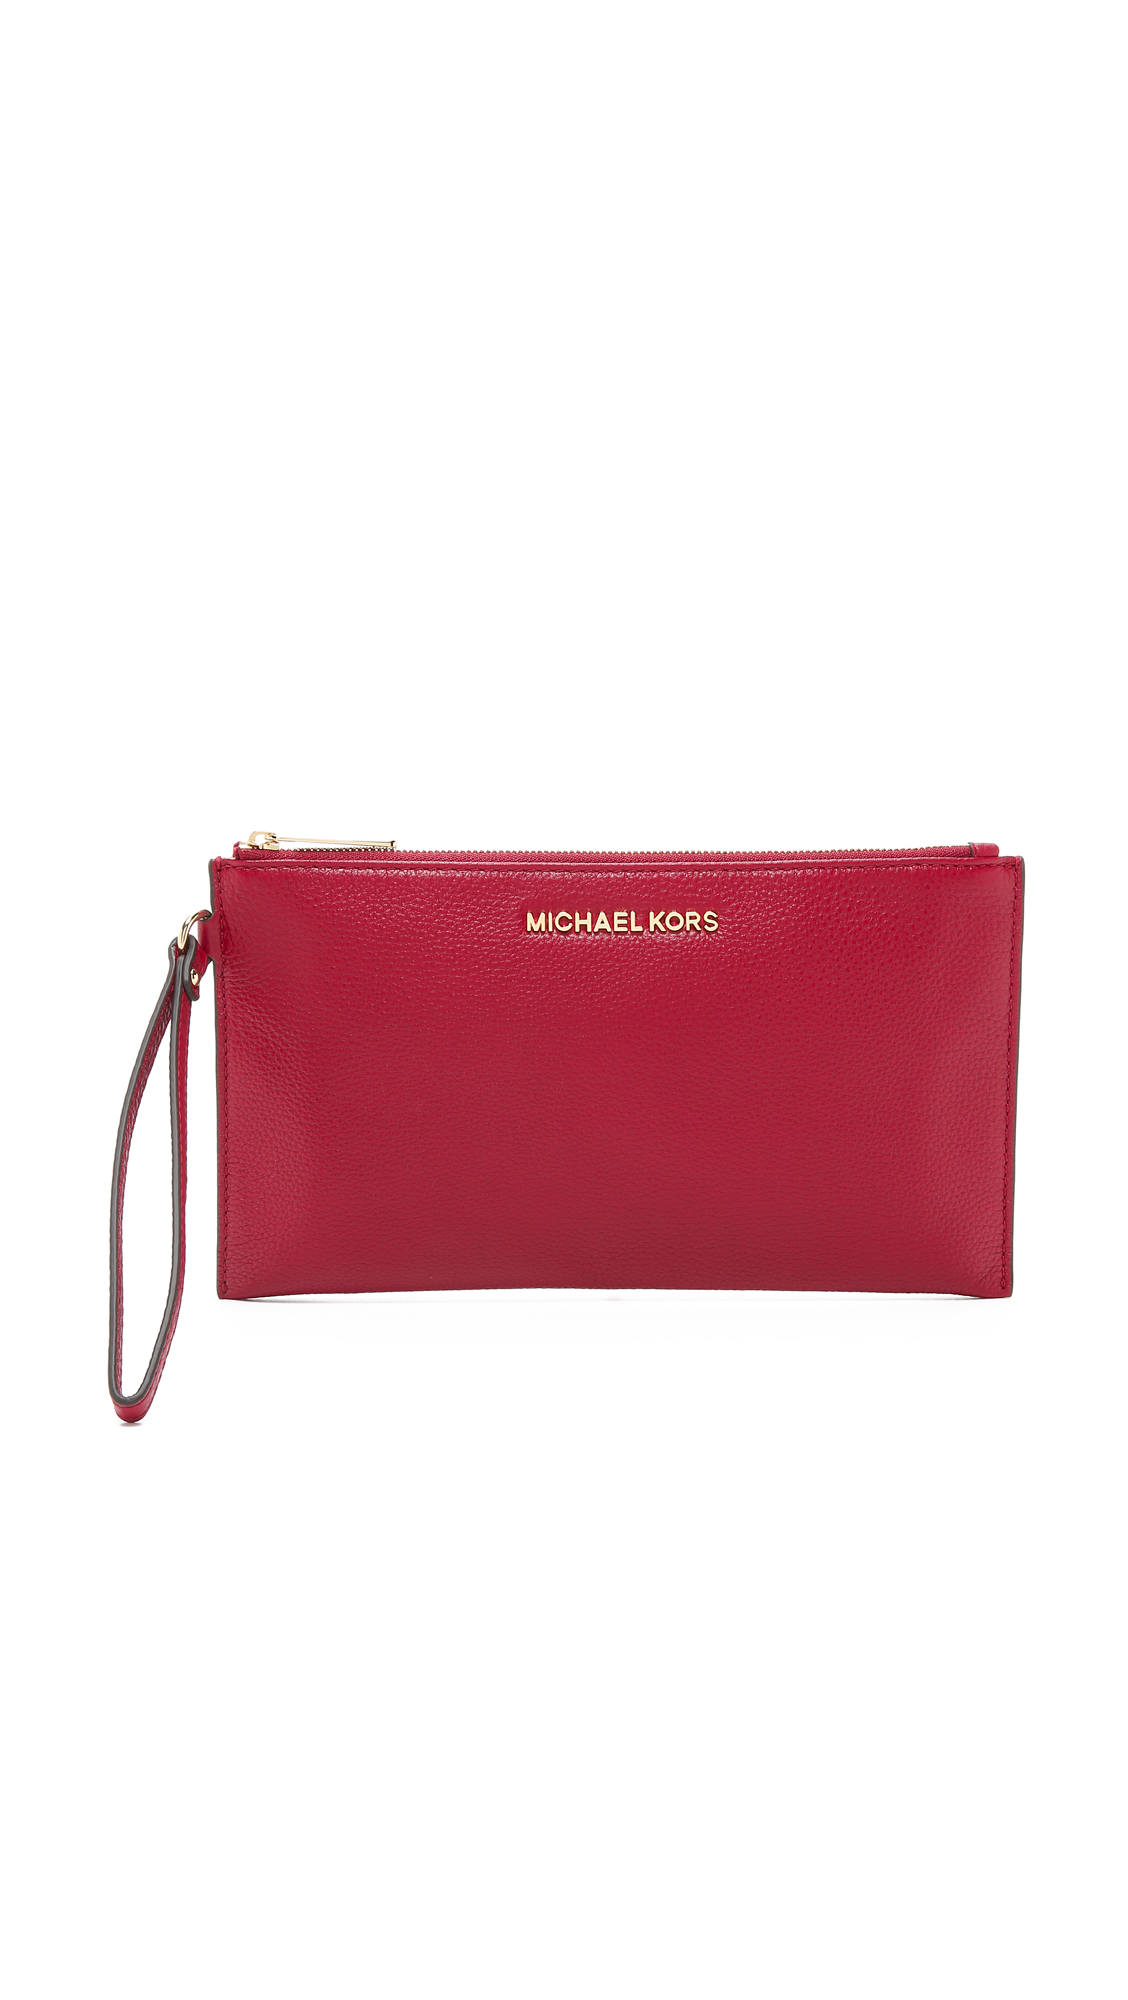 7259d65ae15c1 Lyst - MICHAEL Michael Kors Bedford Large Zip Clutch - Cherry in Red